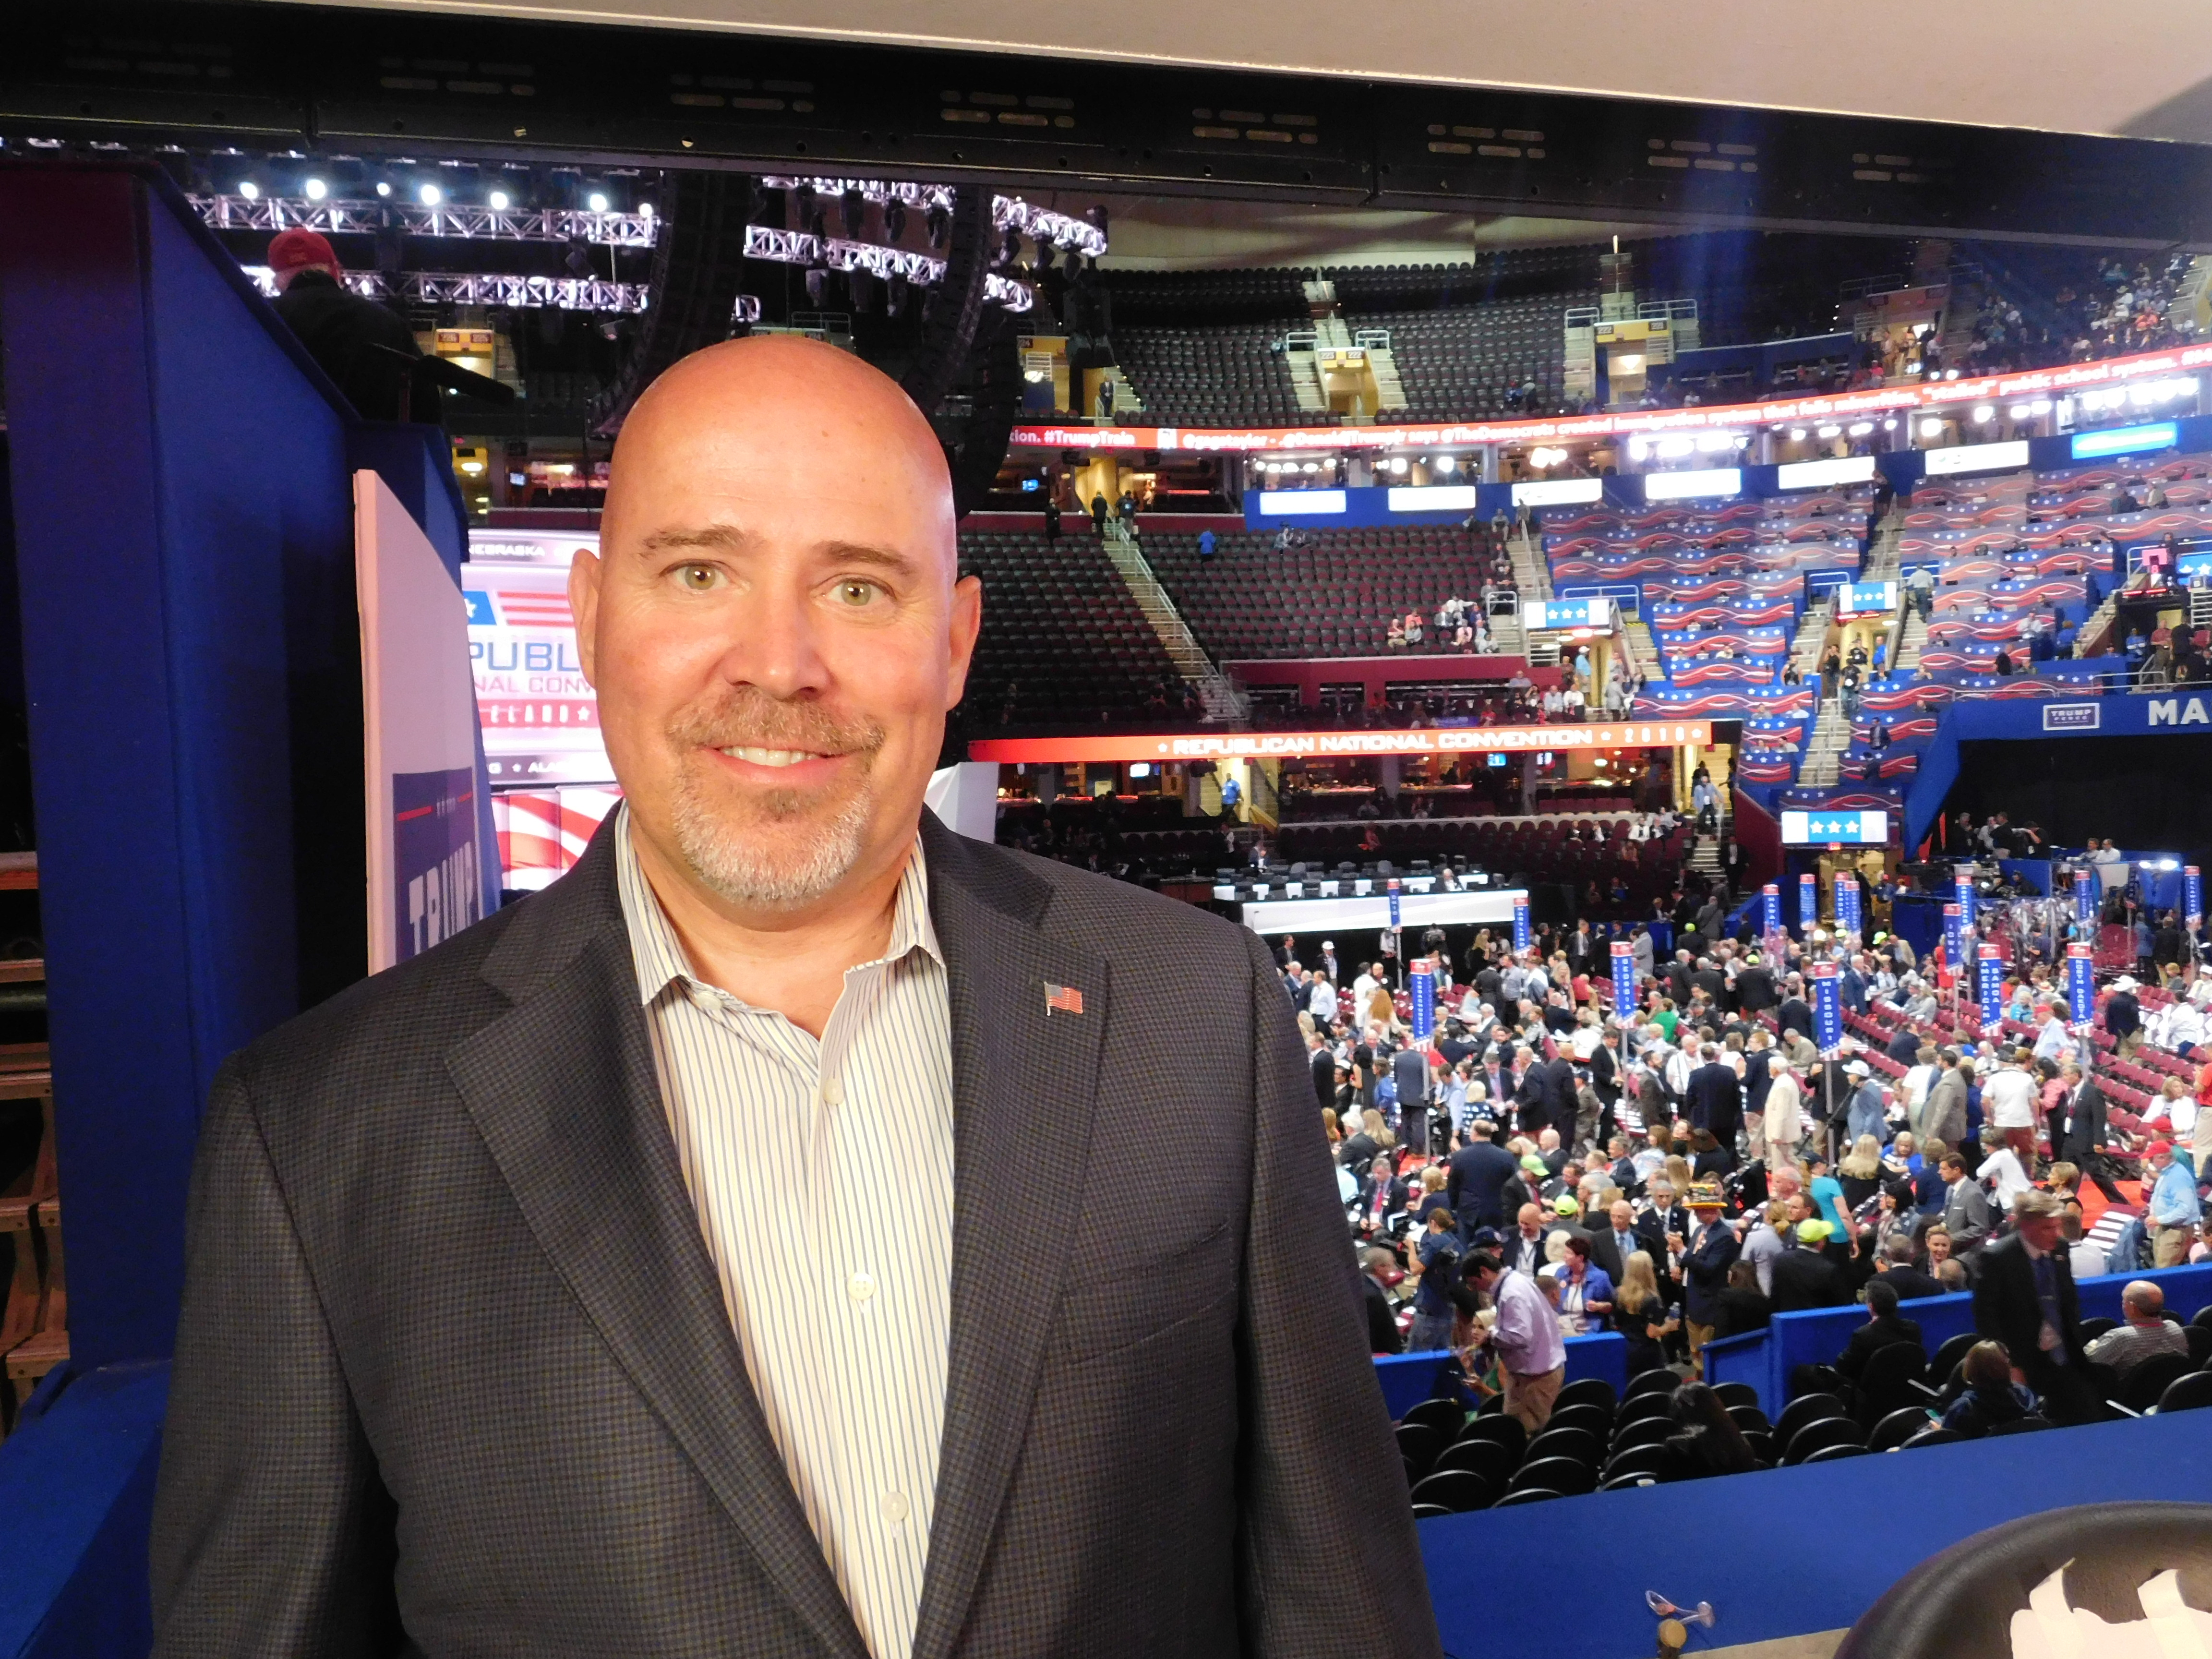 PolitickerNJ caught up with Congressman MacArthur at the 2016 RNC.